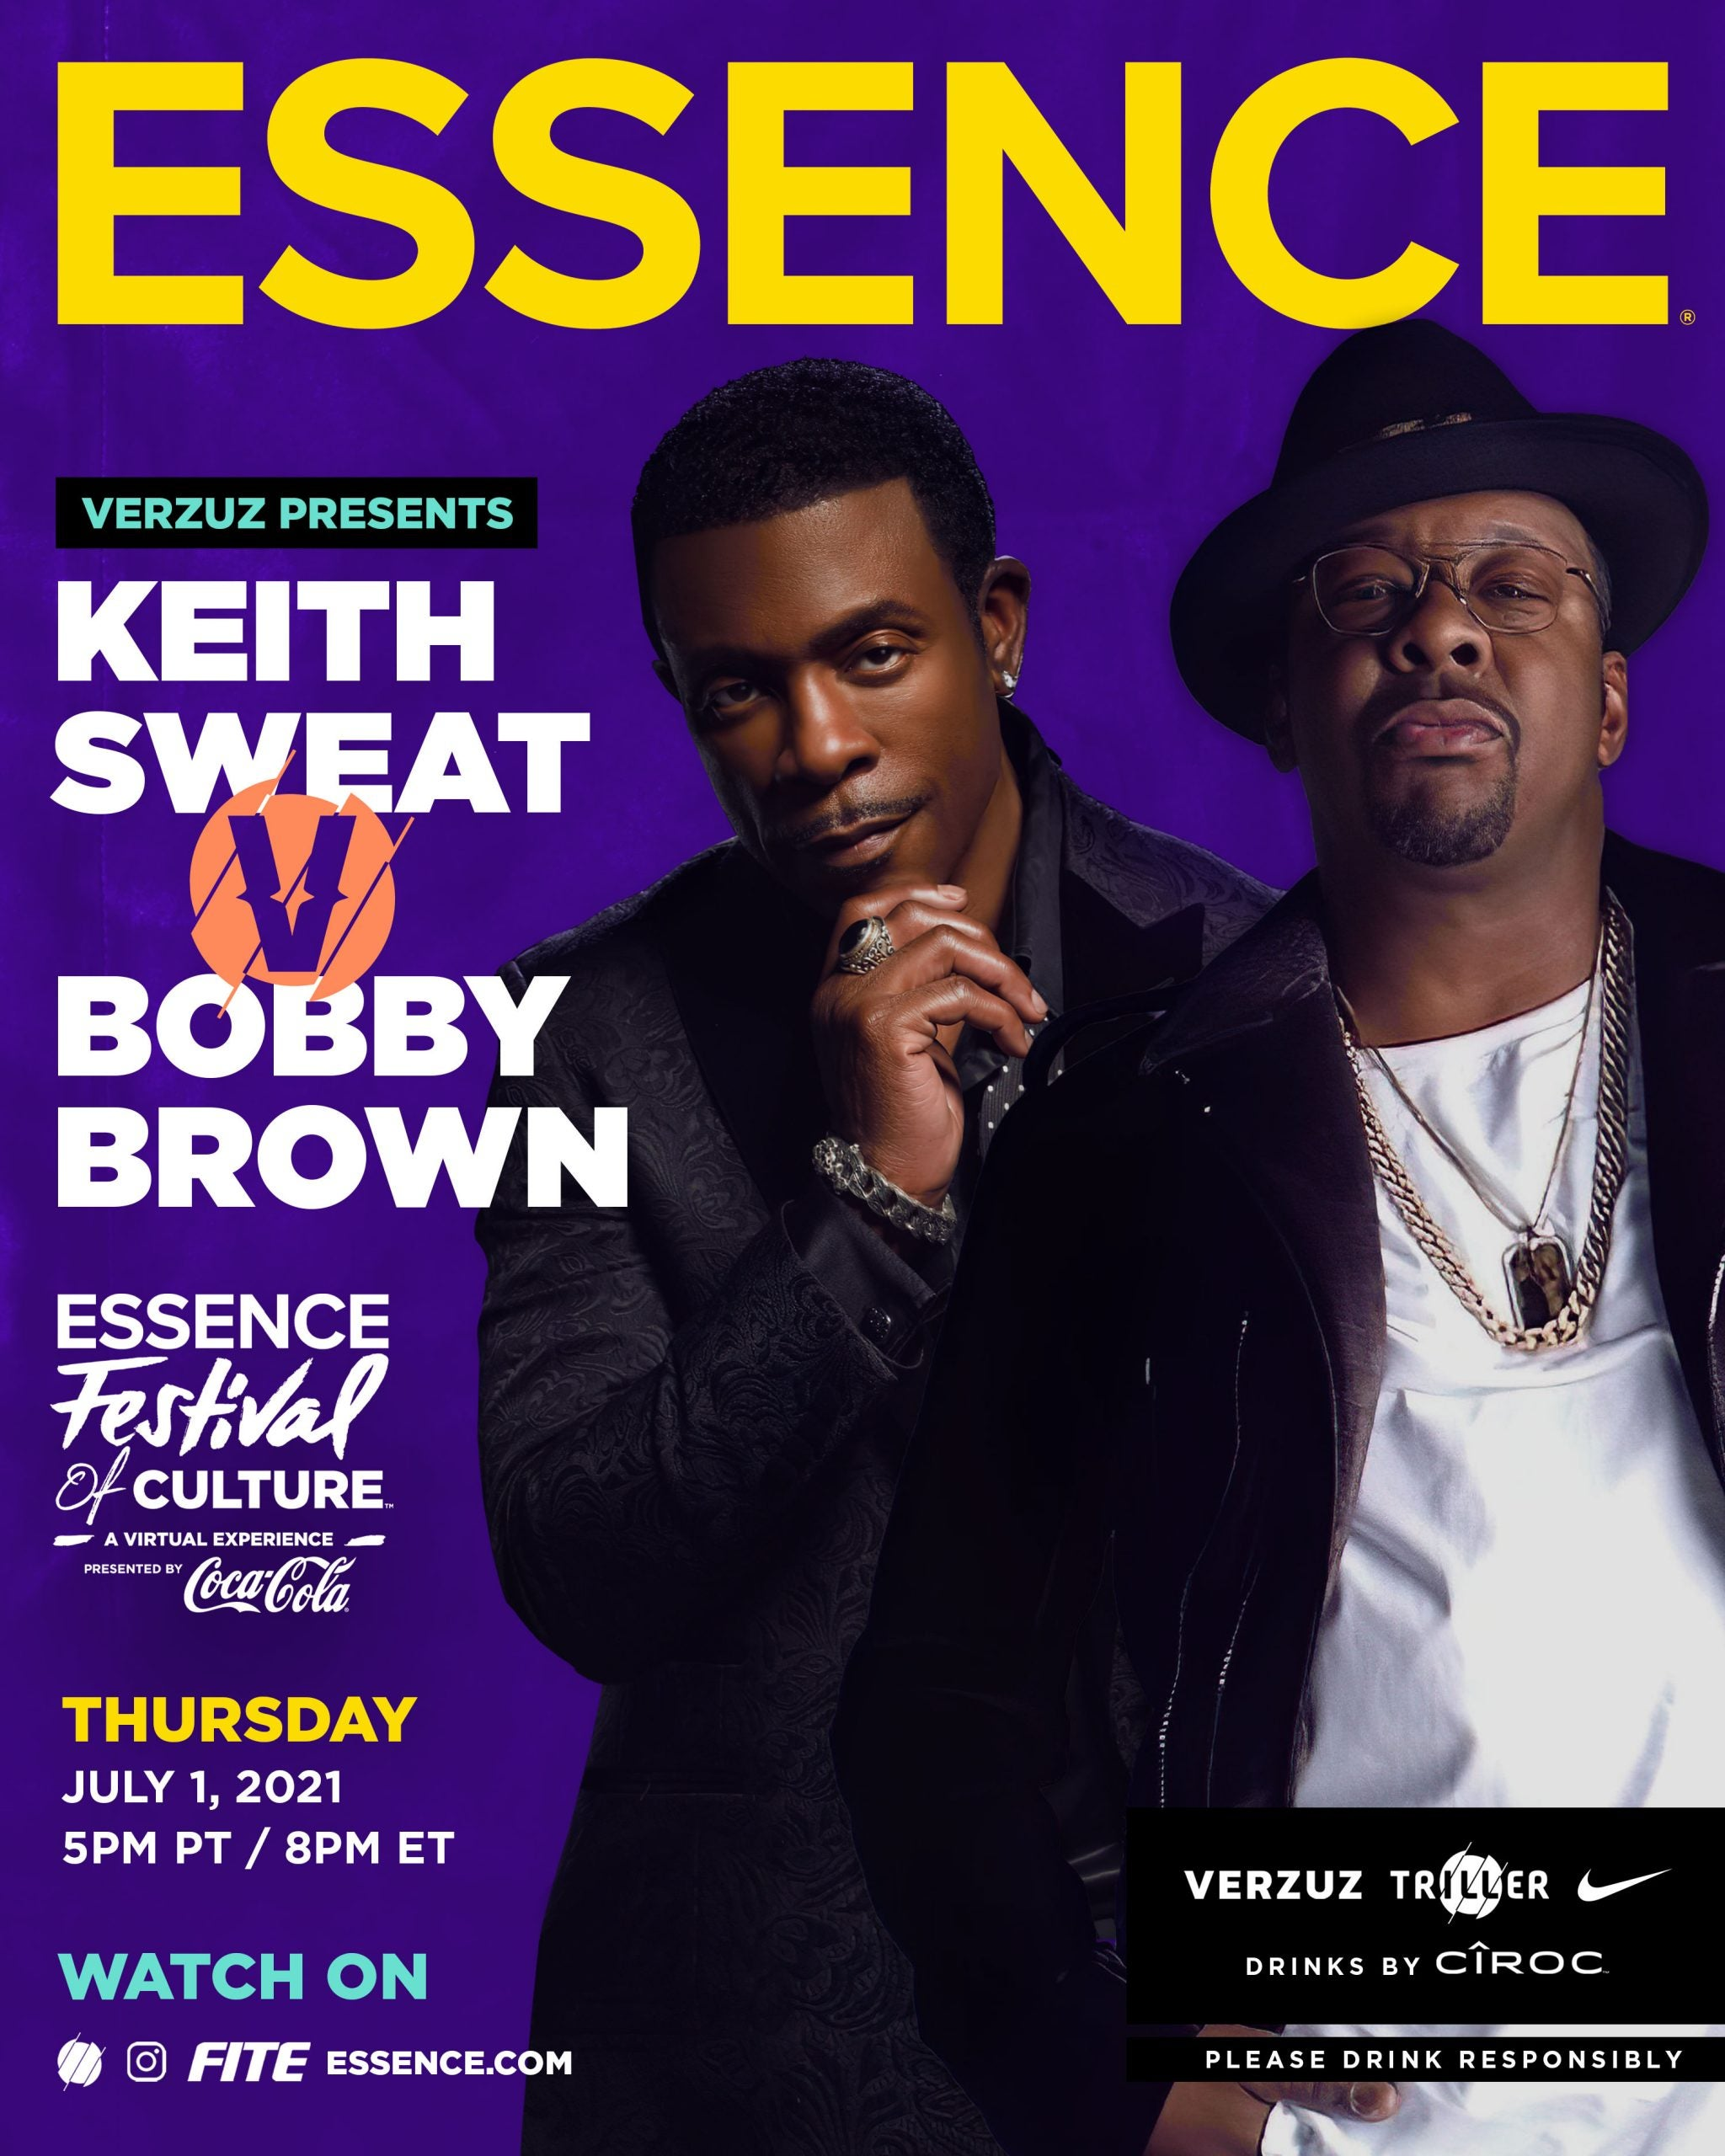 Bobby Brown and Keith Sweat